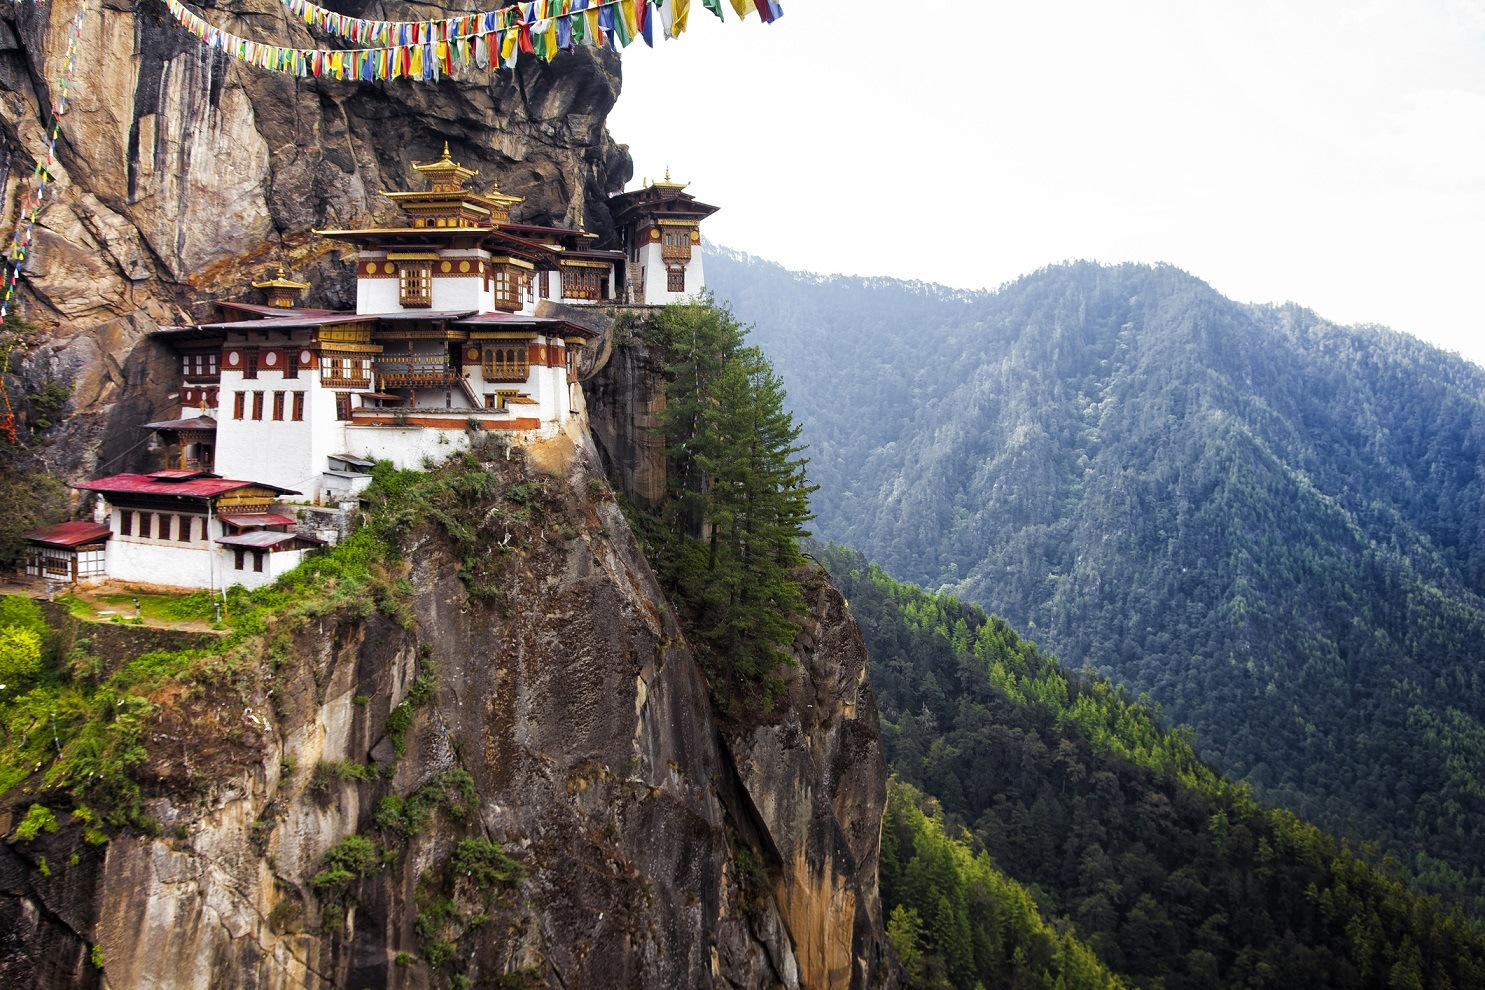 Buddhist temple located on the side of a cliff in Bhutan